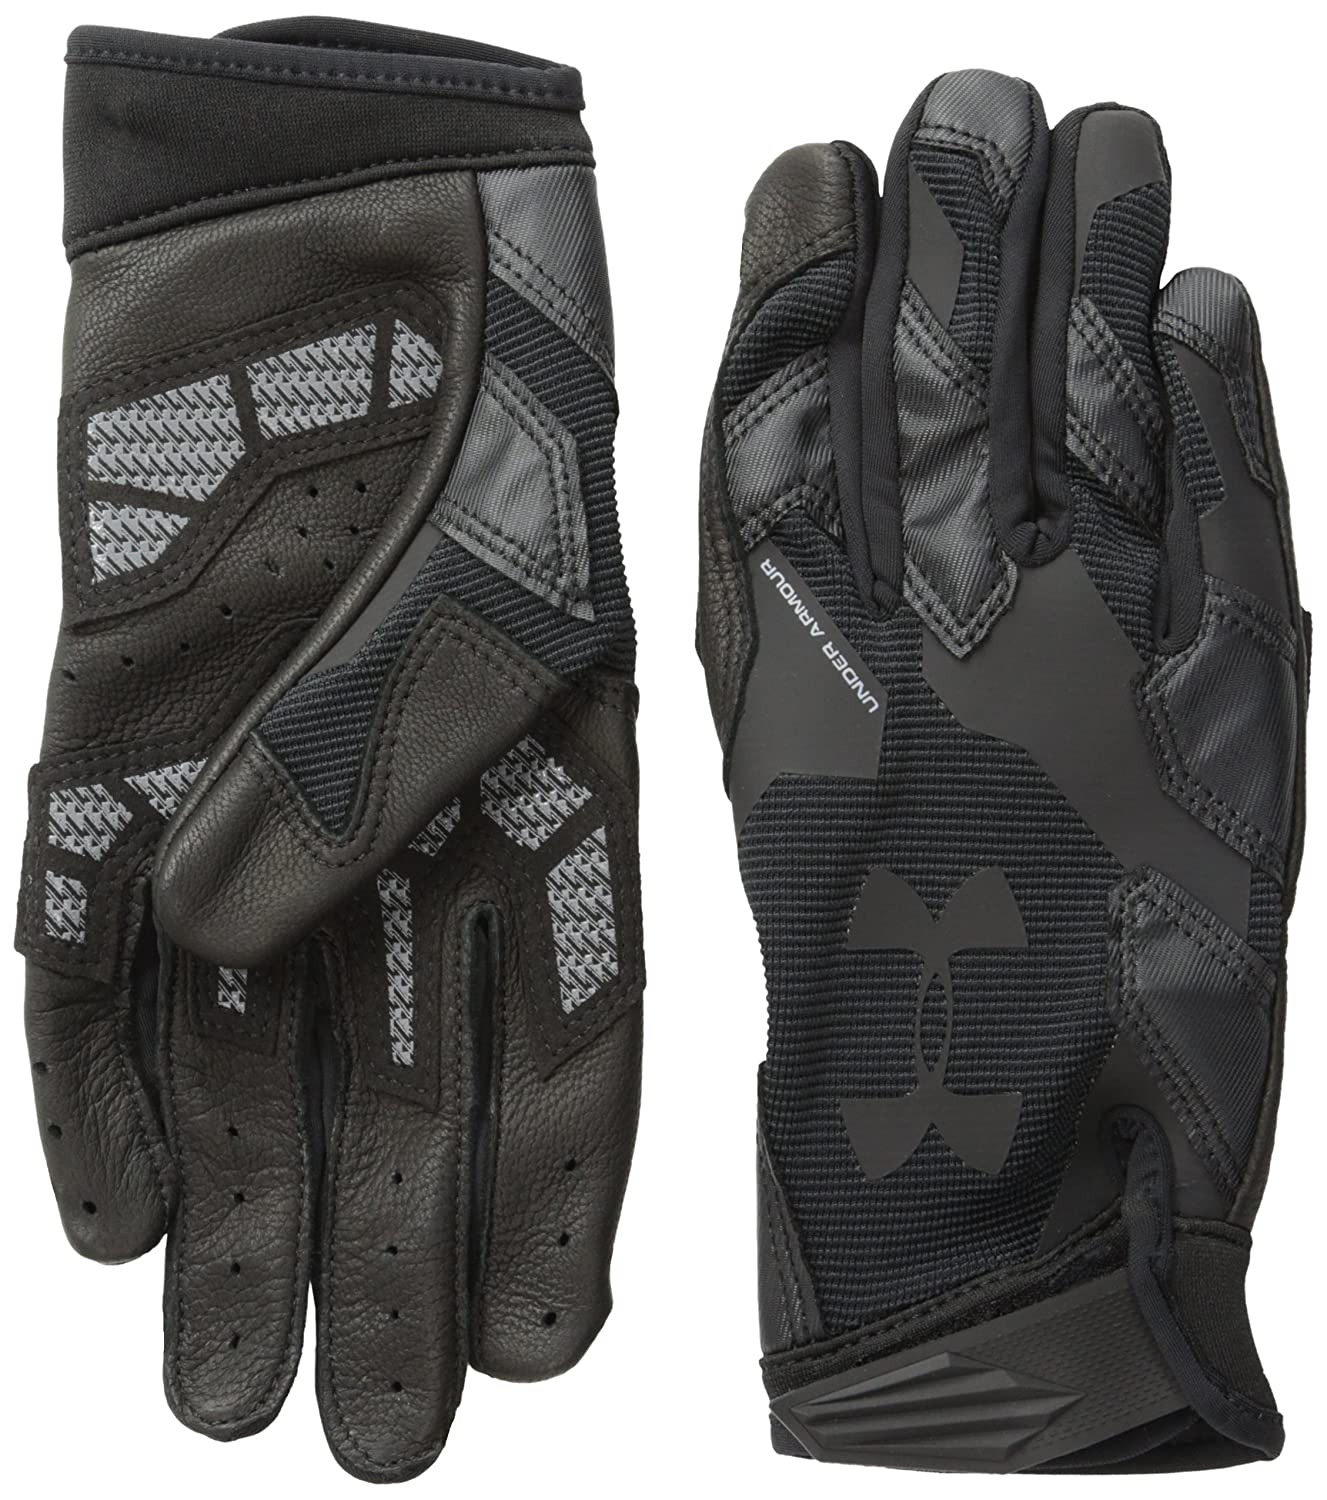 Under Armour 2015 Mens Ua Renegade Training Gloves Support: Under Armour UA Renegade Men's Sportswear Gloves Black